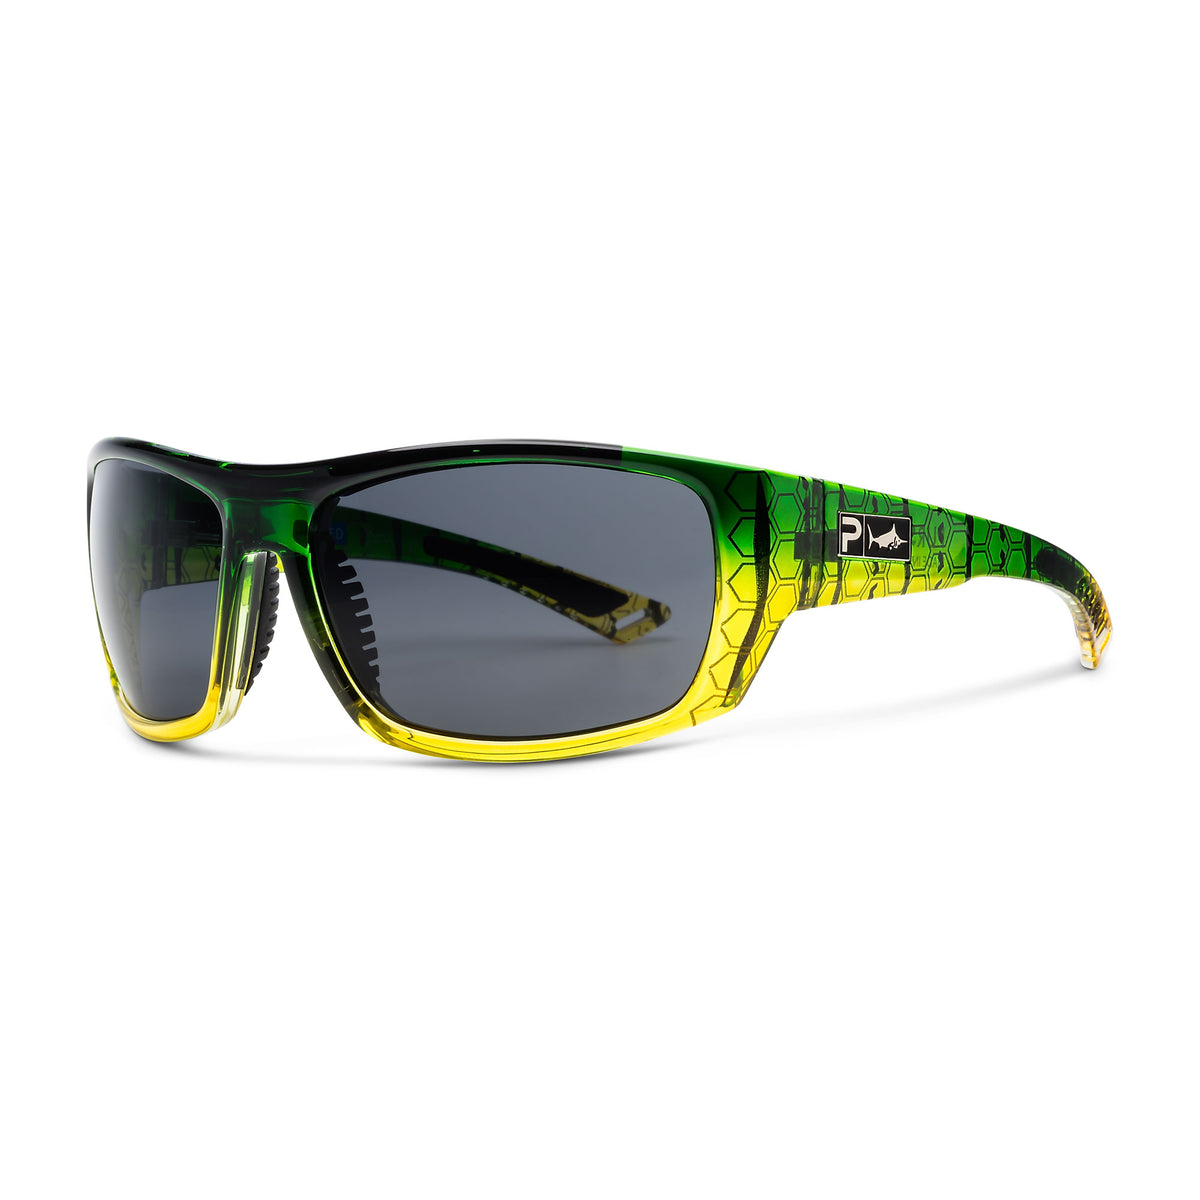 Pursuit - Polarized XP-700™ Polycarbonate Lens Big Image - 4